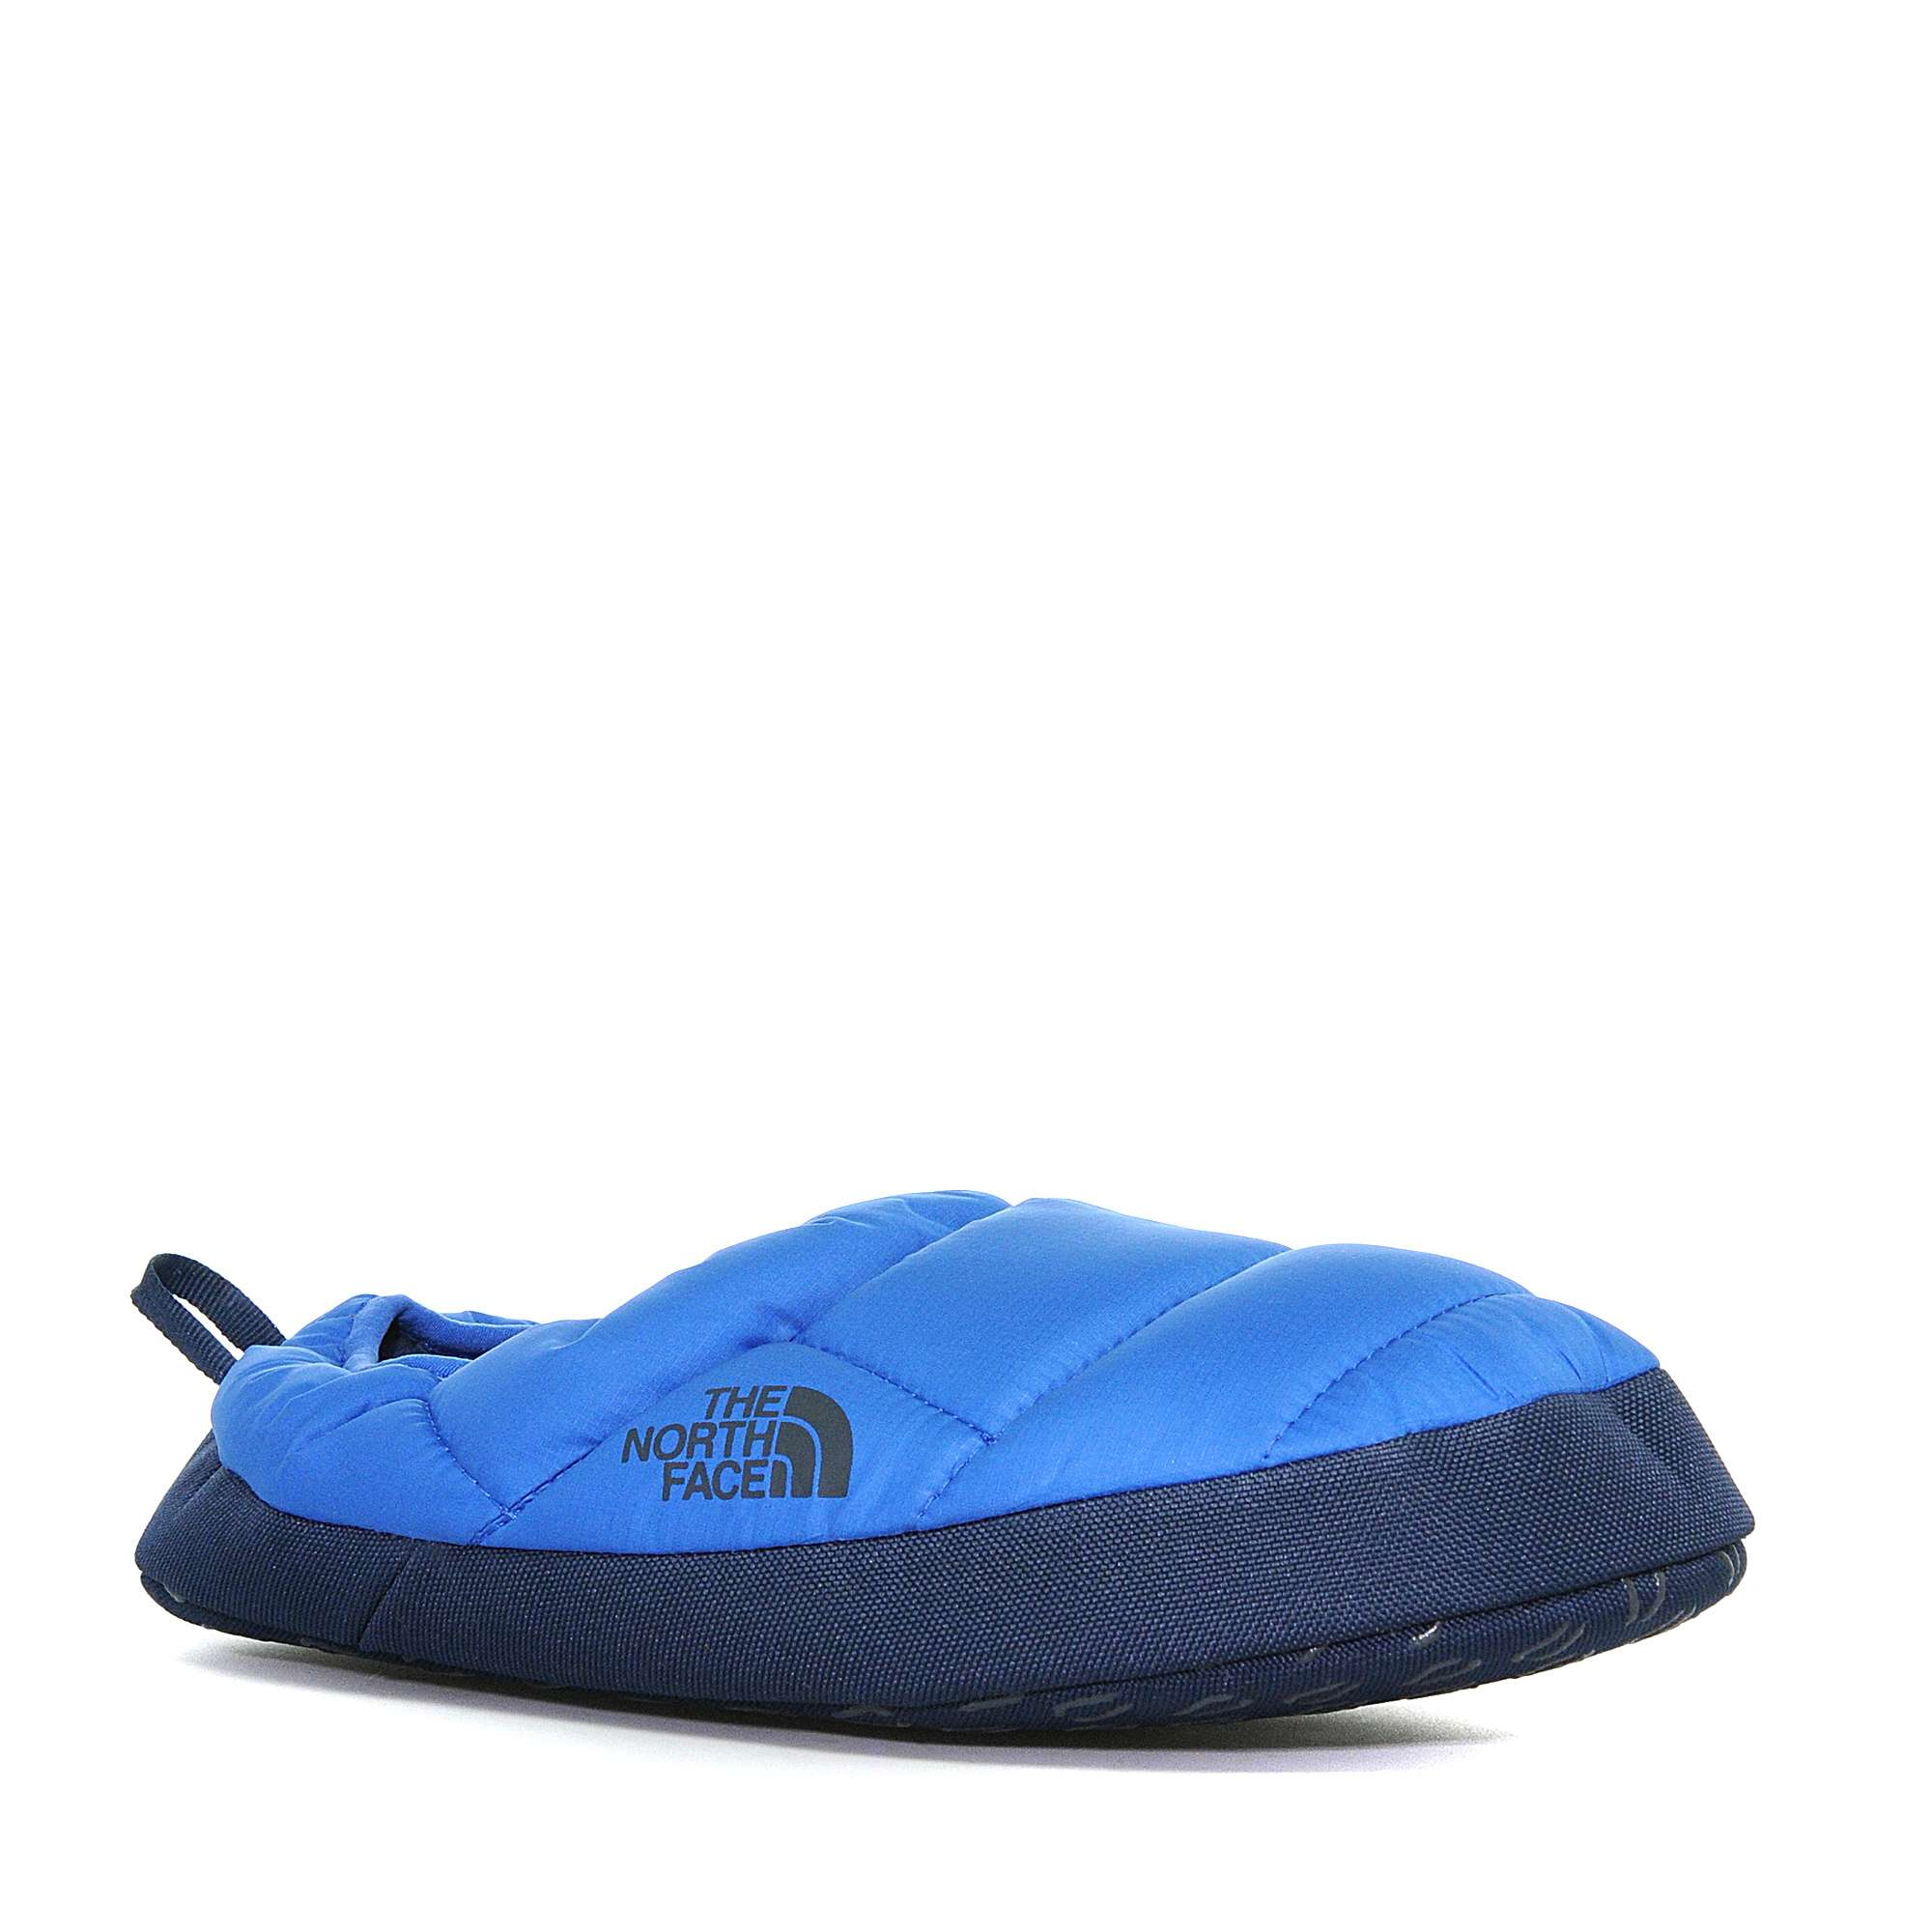 THE NORTH FACE Men's Nuptse Tent Mule 3